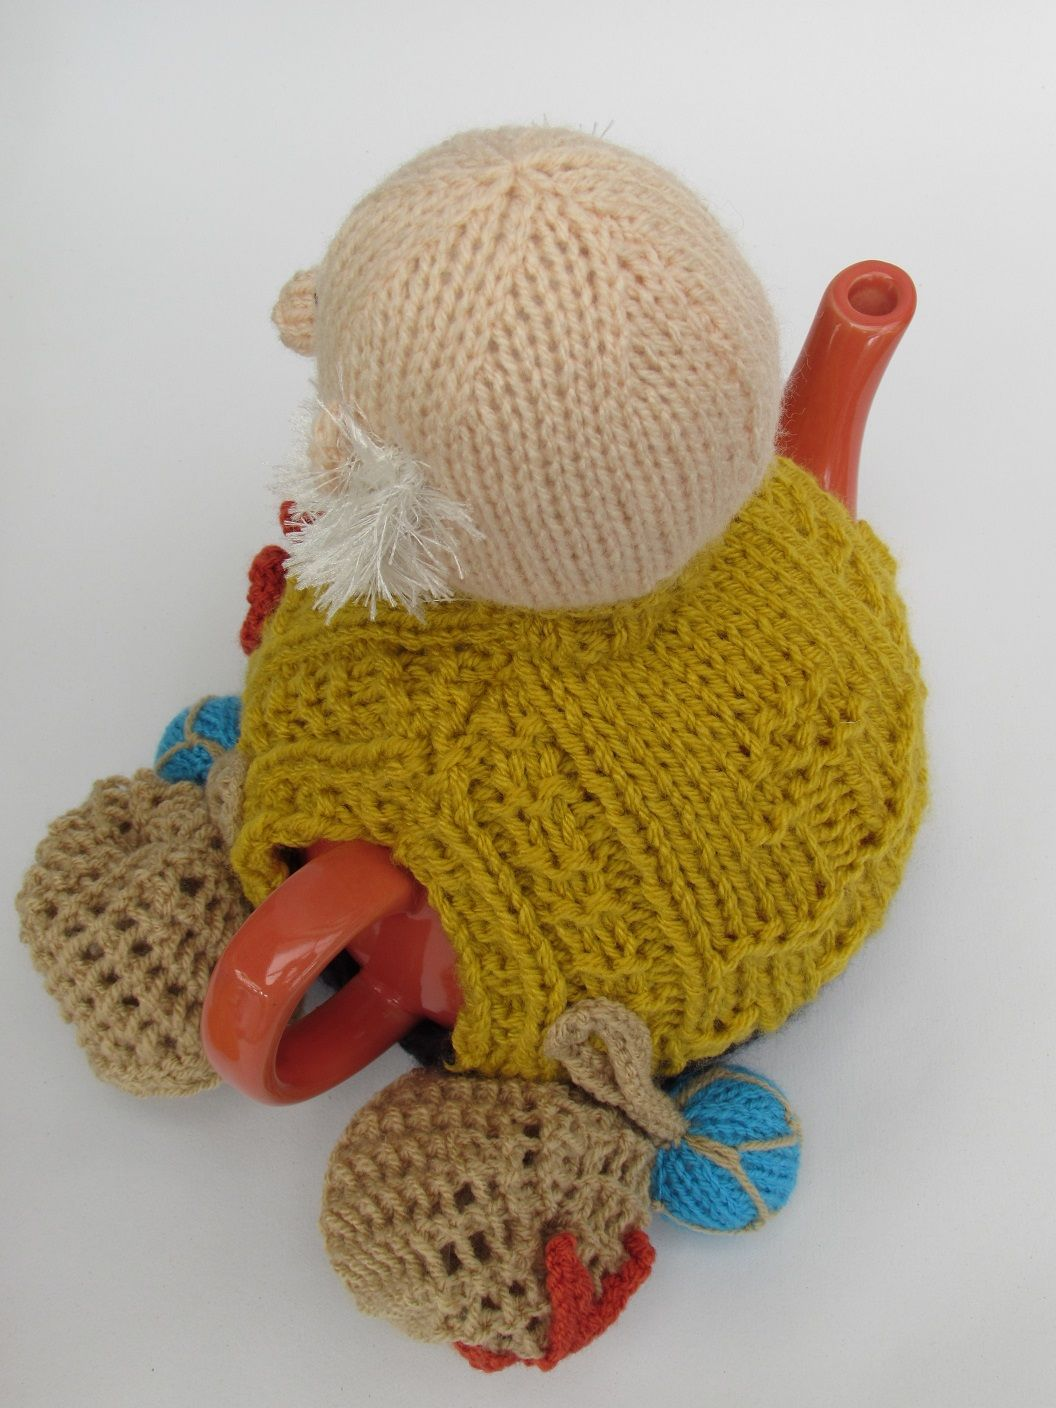 Cornish Fisherman tea cosy knitting pattern | Birds eye view, Tea ...